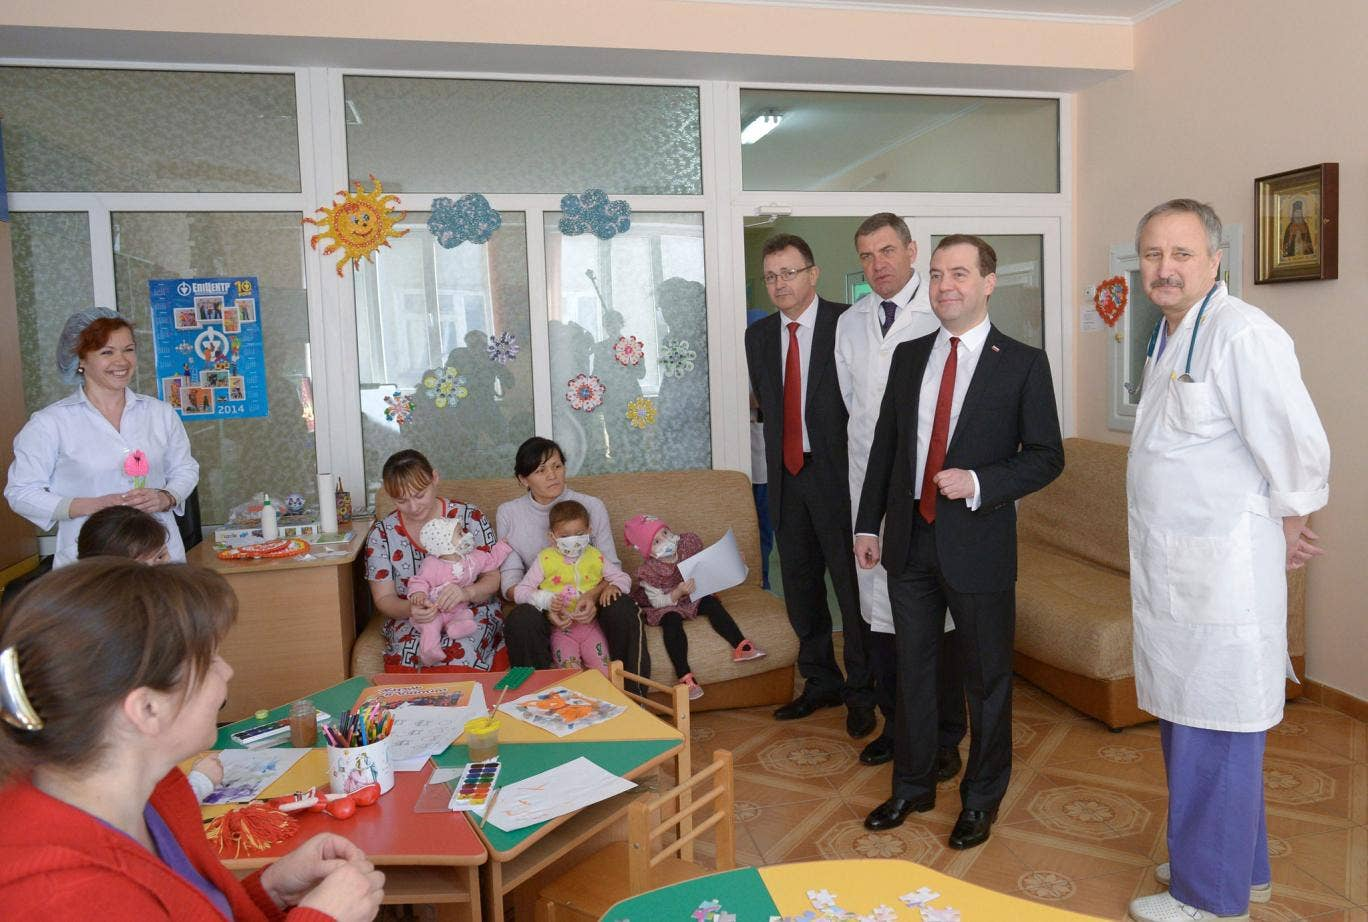 Russian Prime Minister Dmitry Medvedev (2-R) flanked by hospital's chief physician Alexandr Astakhov (3-R) visits the Simferopol Republican Pediatric Hospital in Simferopol, Crimea